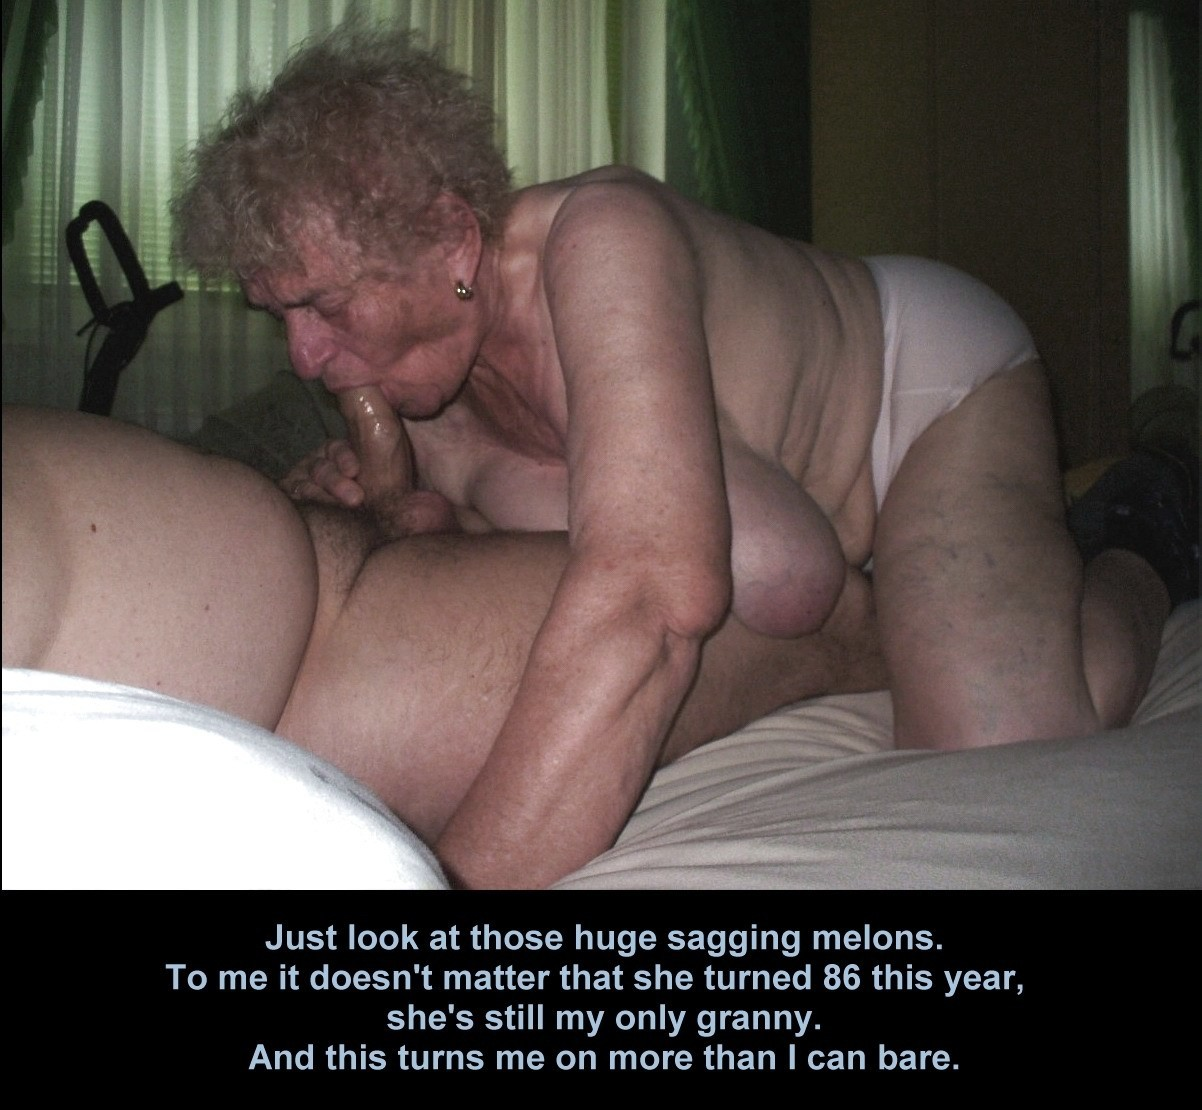 Granny porn caption